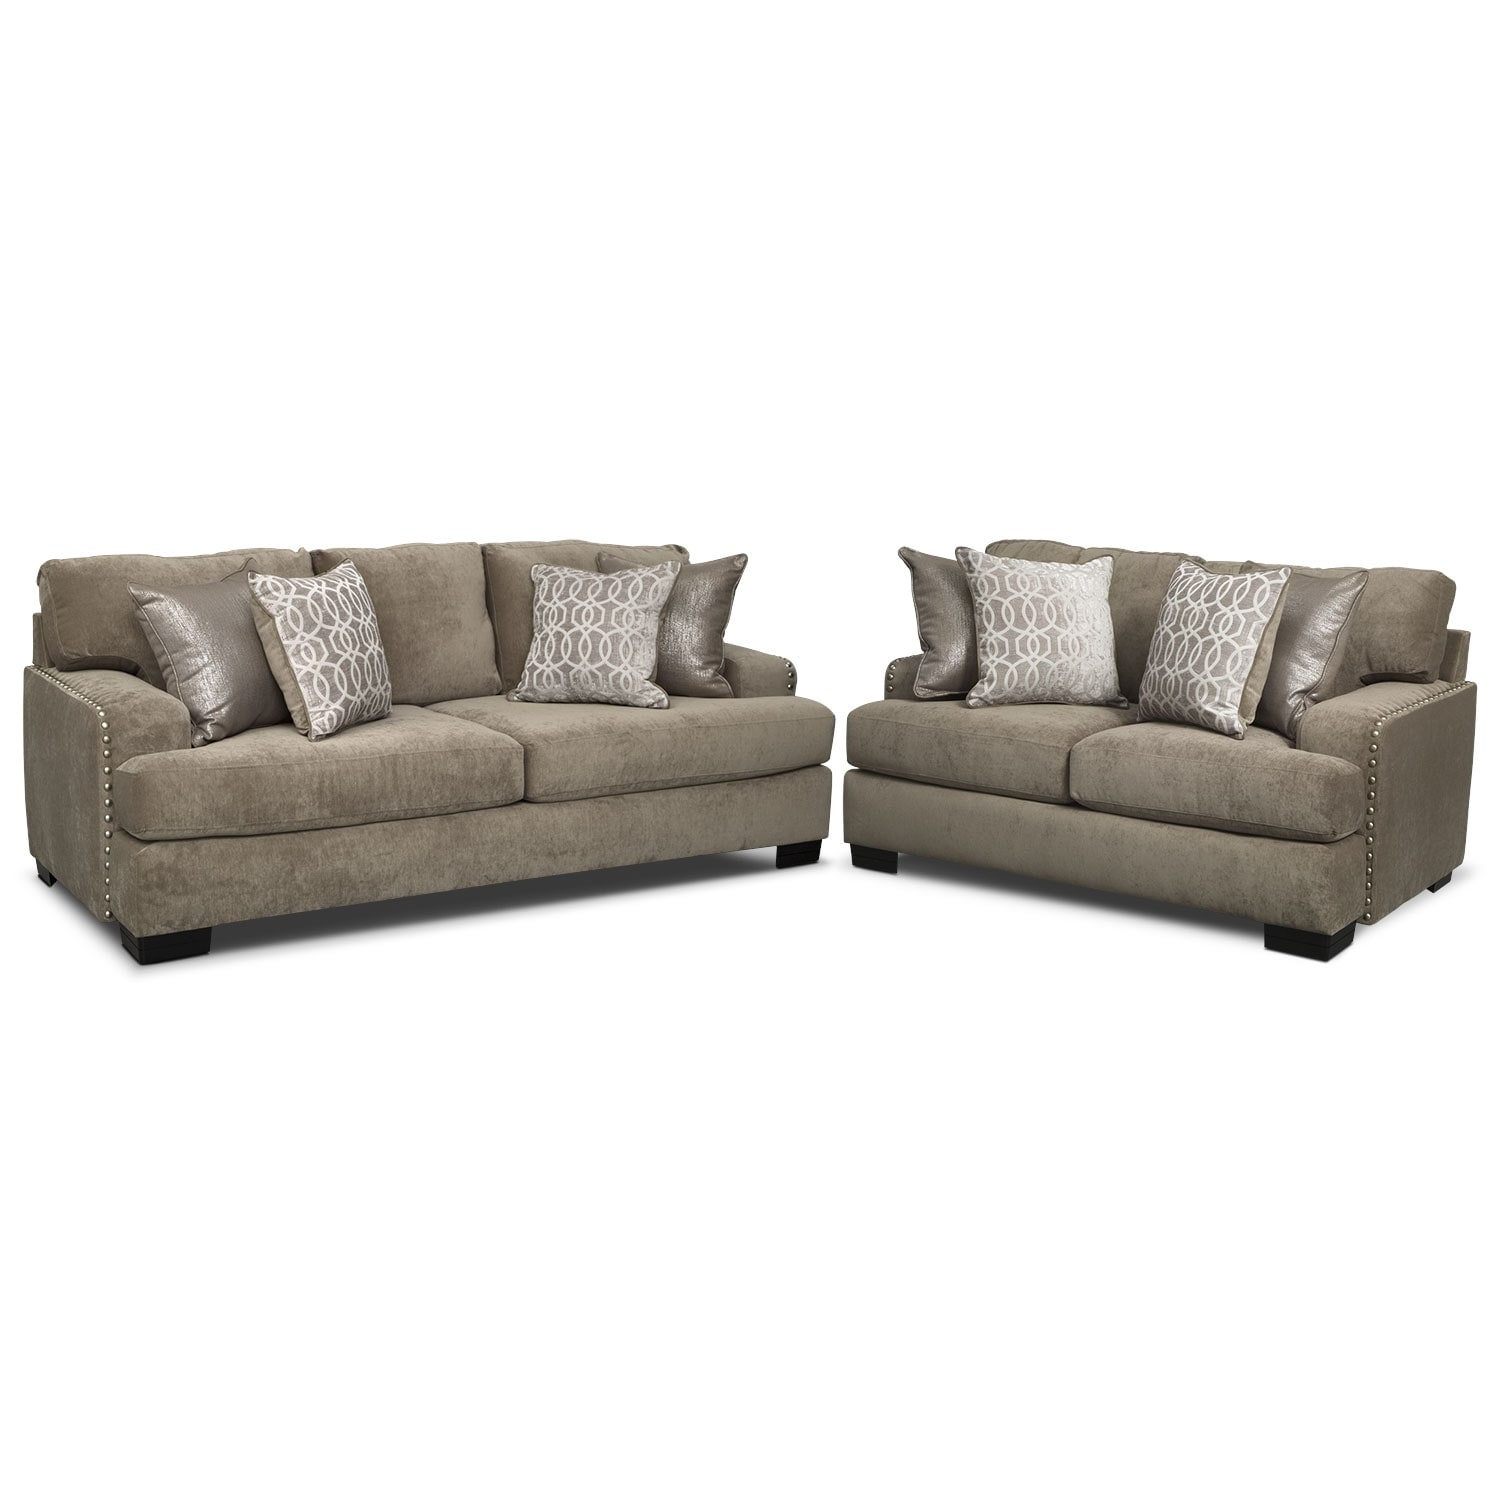 Living Room Furniture - Tempo Sofa and Loveseat Set - Platinum